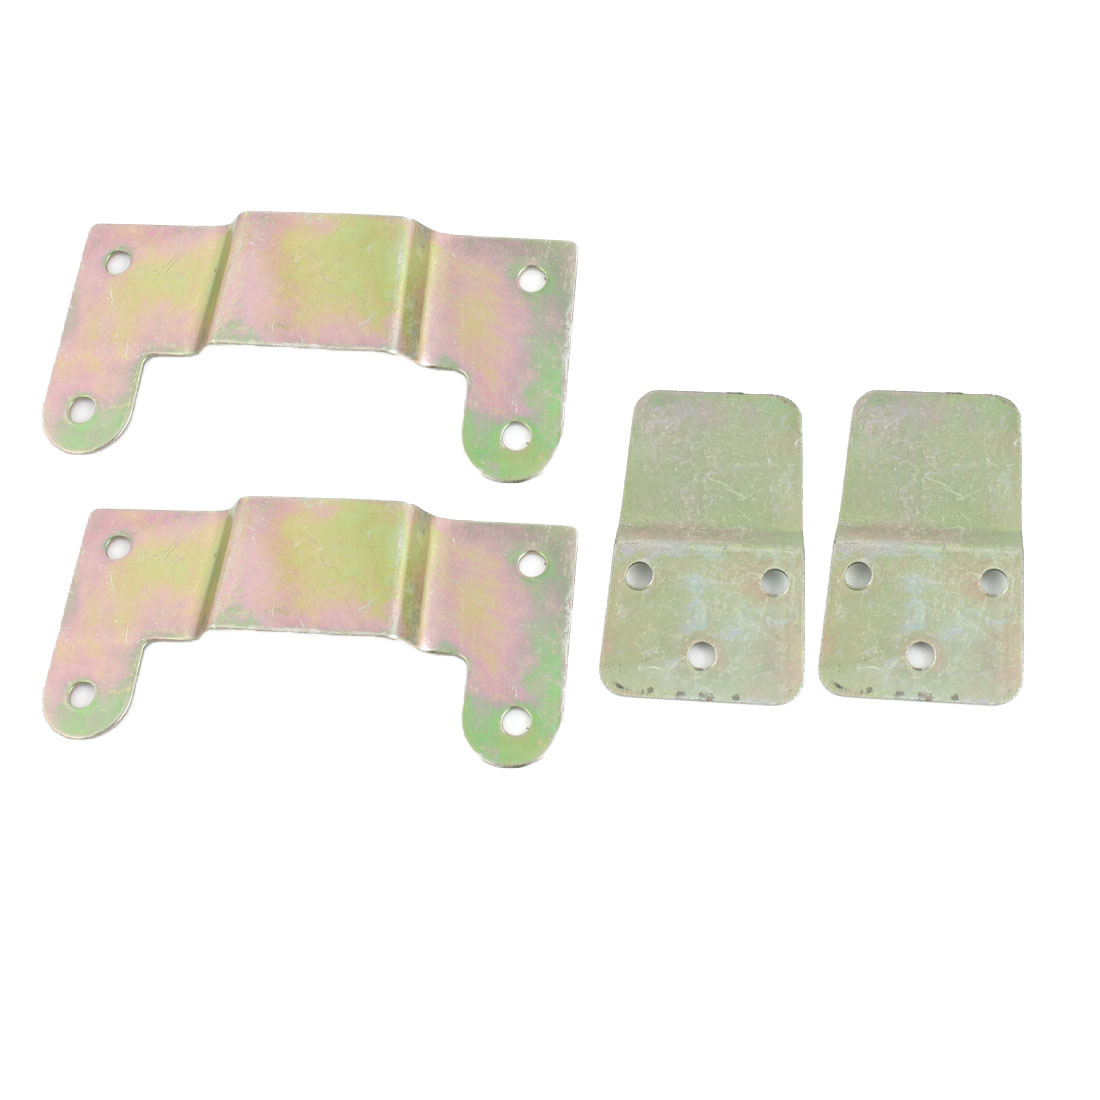 2 Pcs Replacement Brass Wall Fan Mounting Bracket Hanger Set